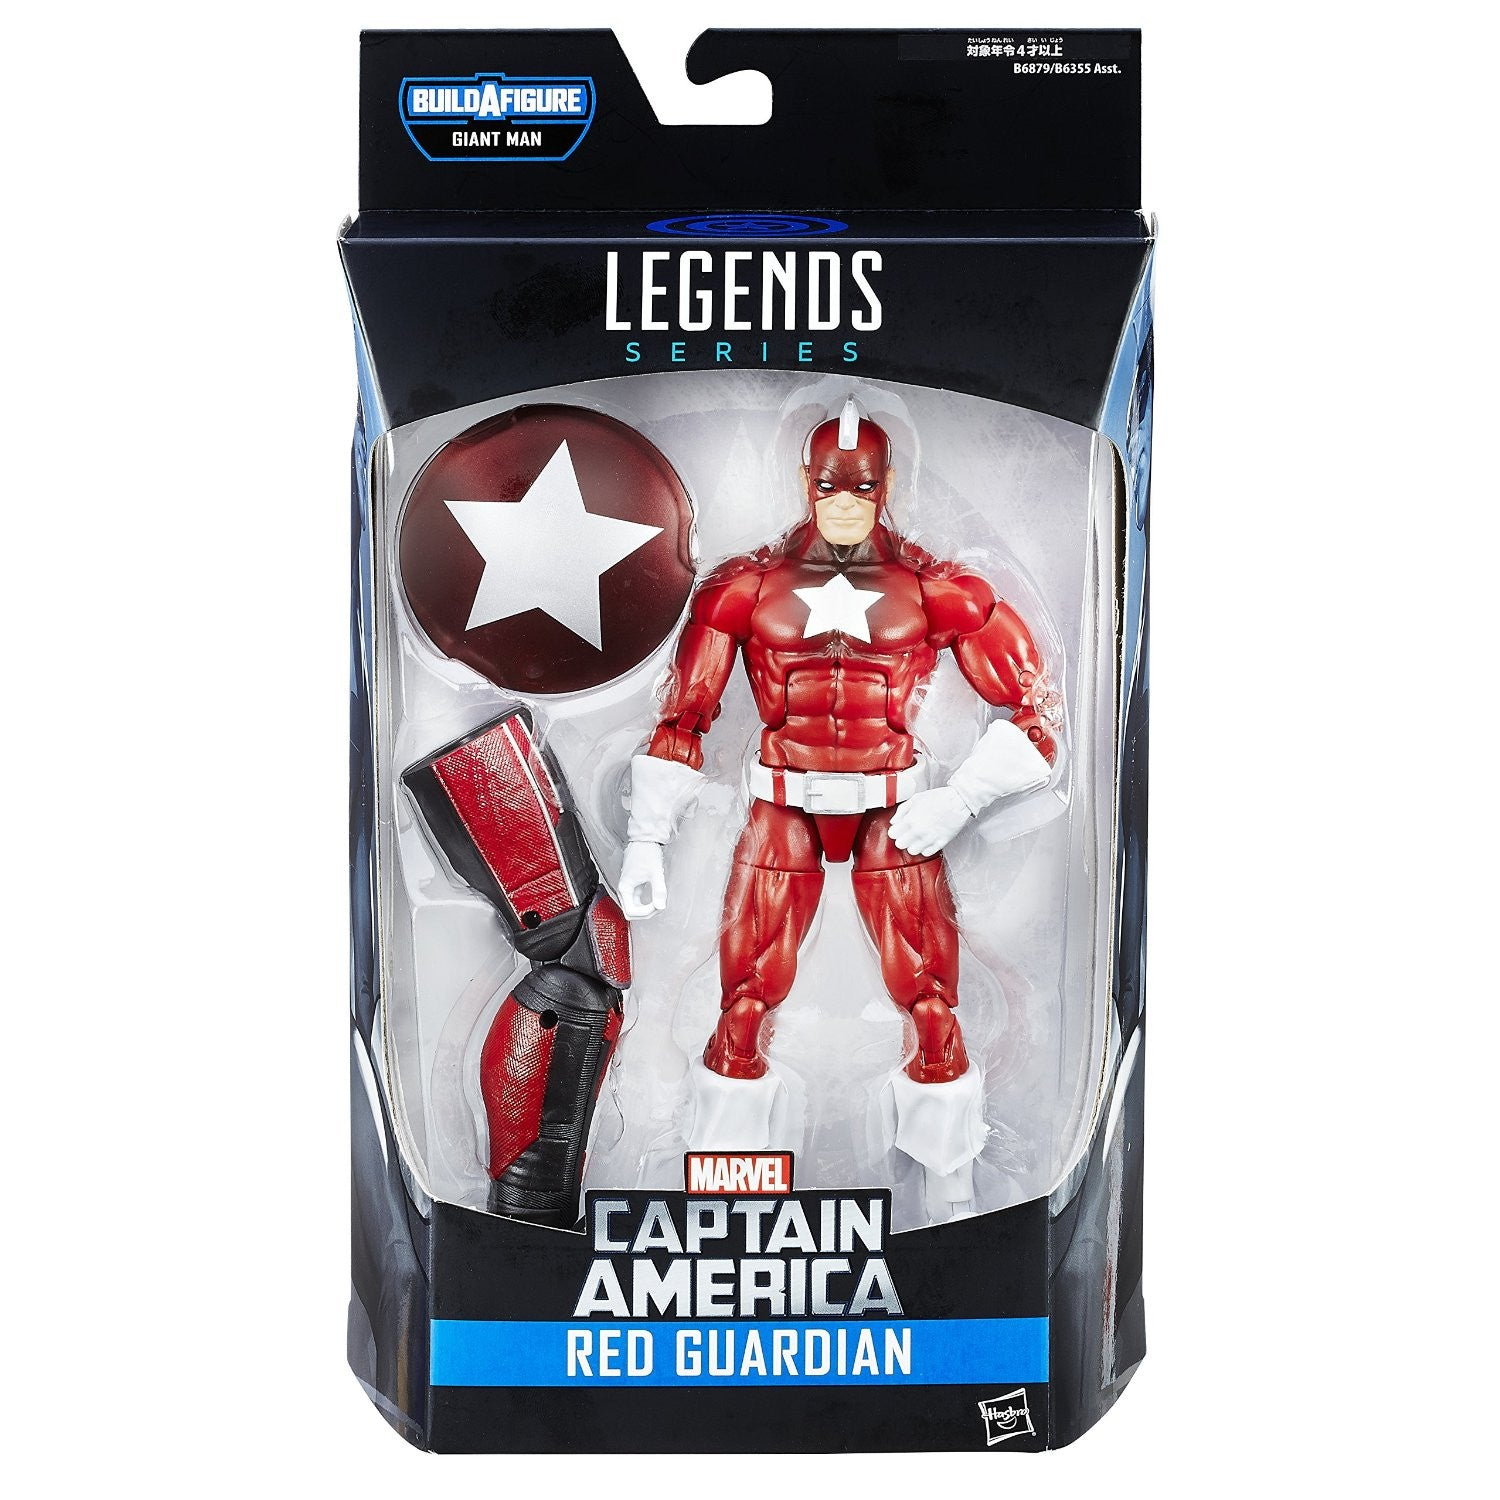 Marvel Legends Infinite - Giant Man BAF - Captain America - Red Guardian Action Figure (B6879)